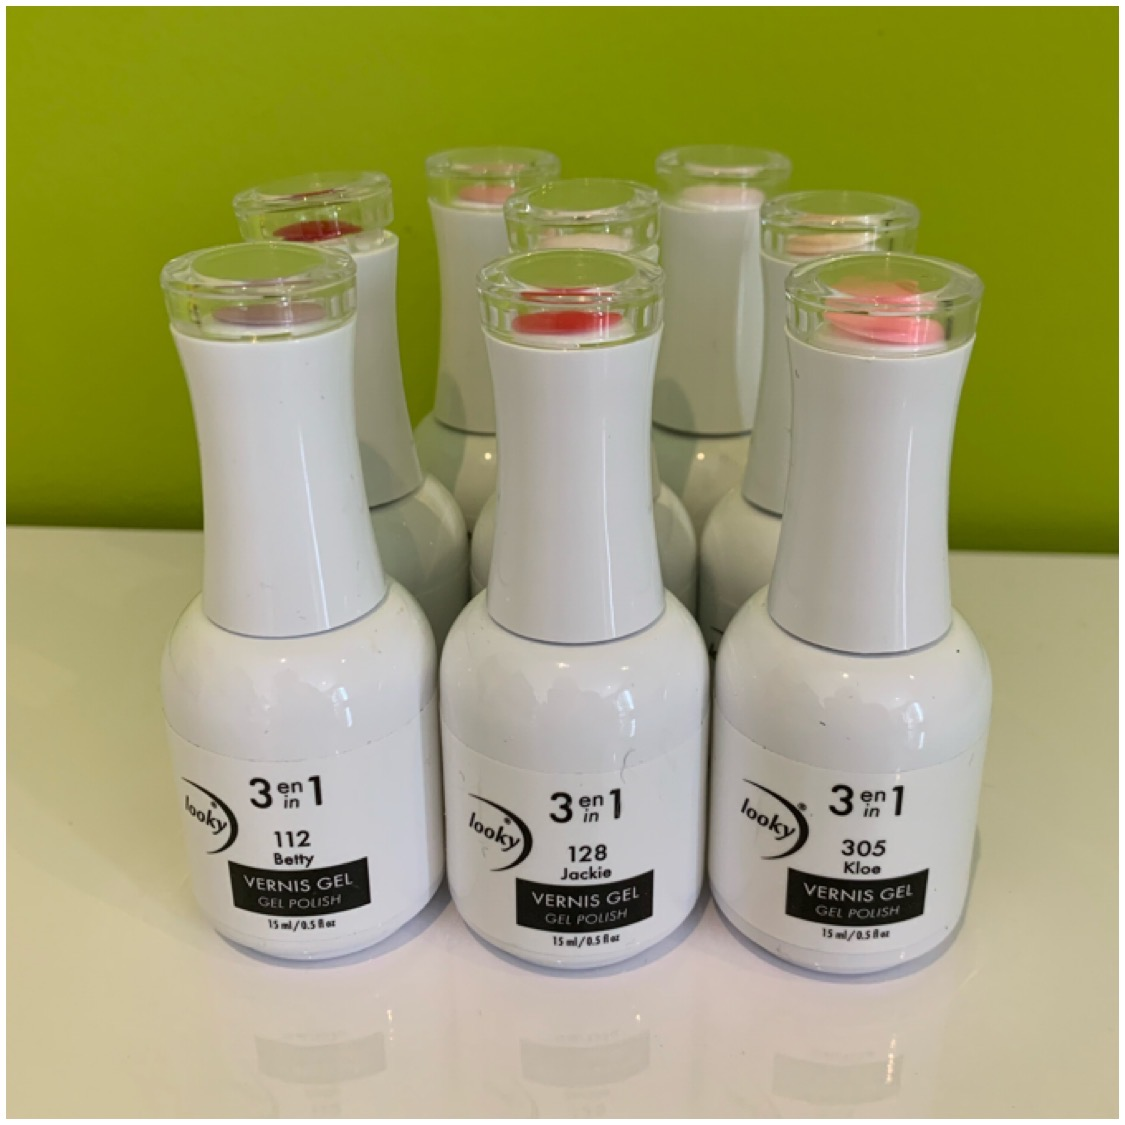 vernis gel looky 3 en 1